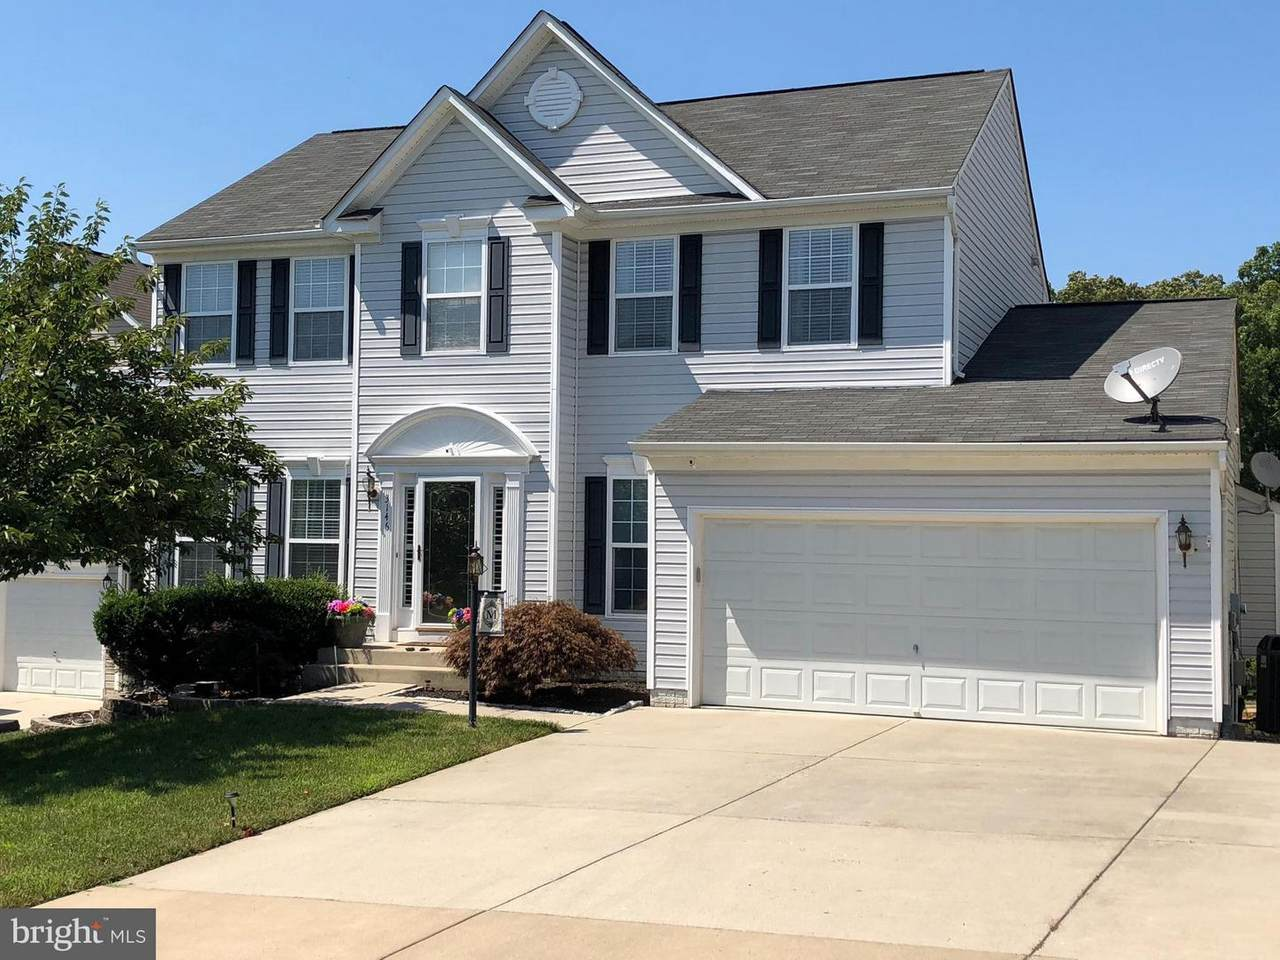 3146 Weeping Cherry Court - Photo 1